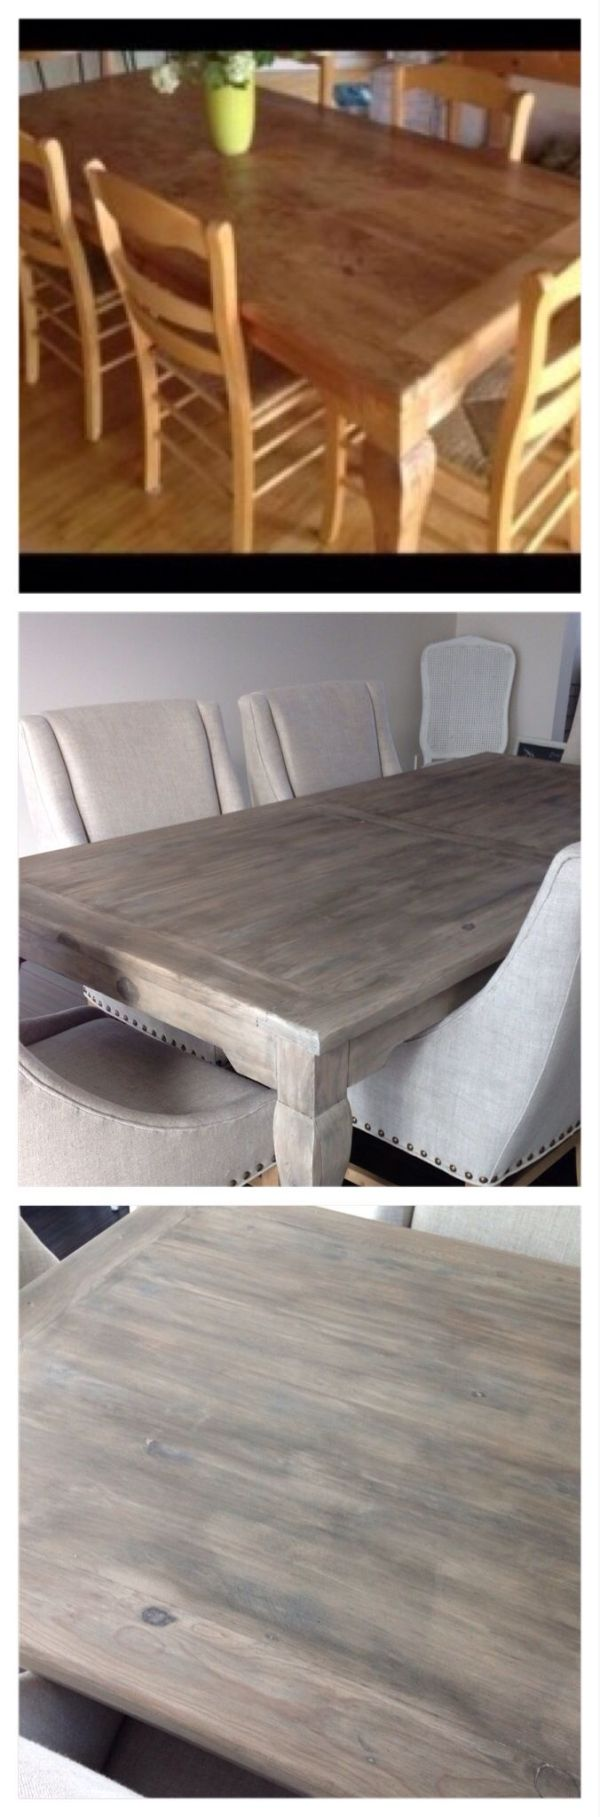 DIY Restoration Hardware Finish Craigslist Table Stripped Sanded Bleached I Used